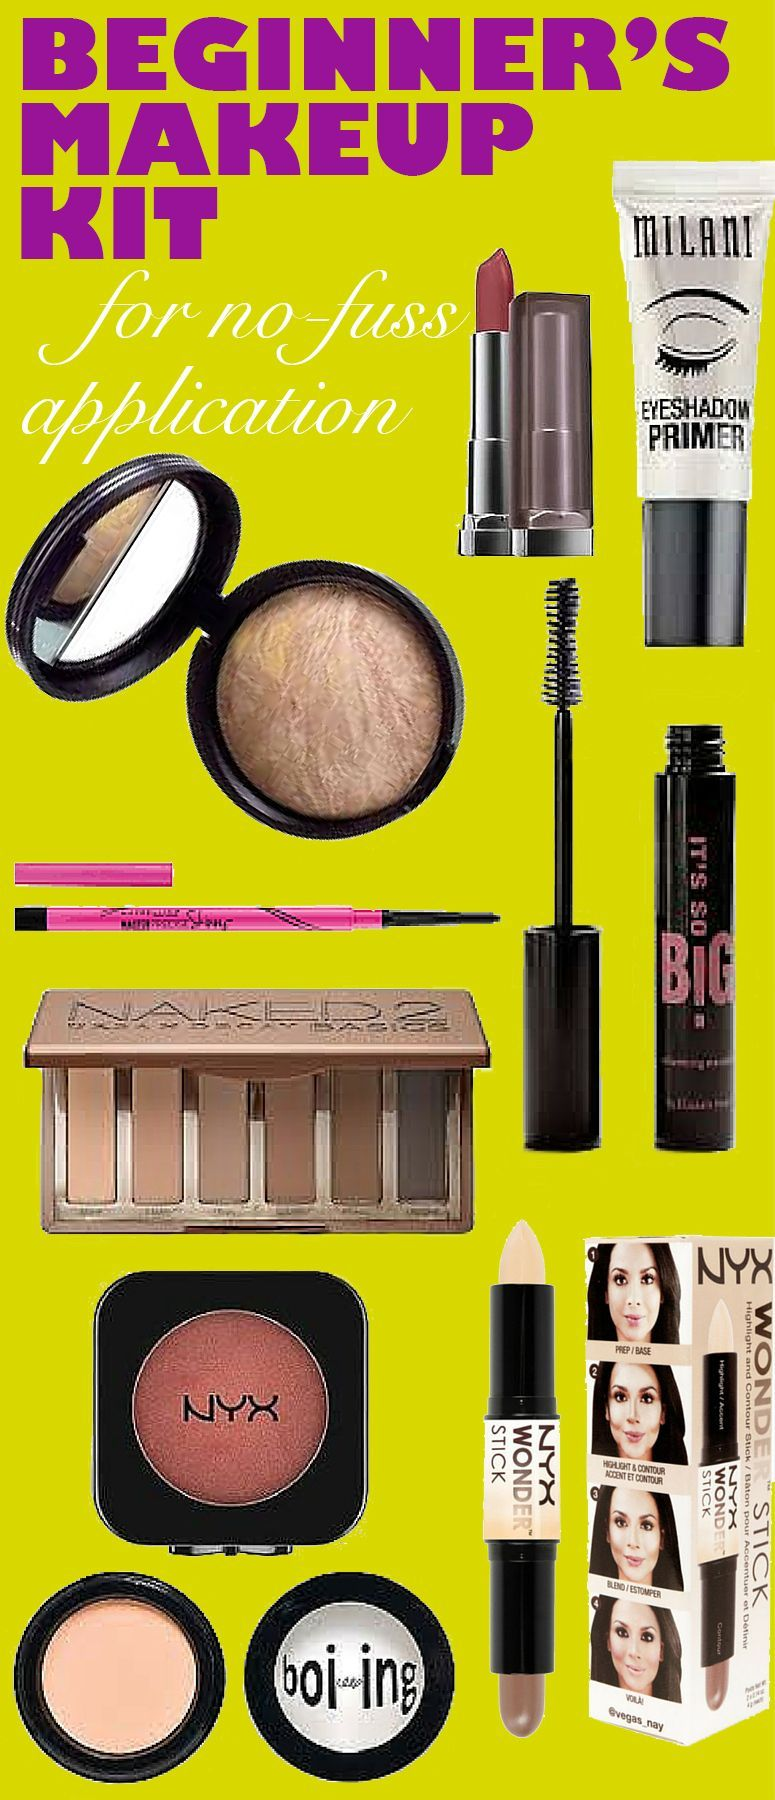 Makeup Kit This is the complete guide to beginner's makeup! Every makeup product you need all condensed into a beginner's makeup kit!This is the complete guide to beginner's makeup! Every makeup product you need all condensed into a beginner's makeup kit!